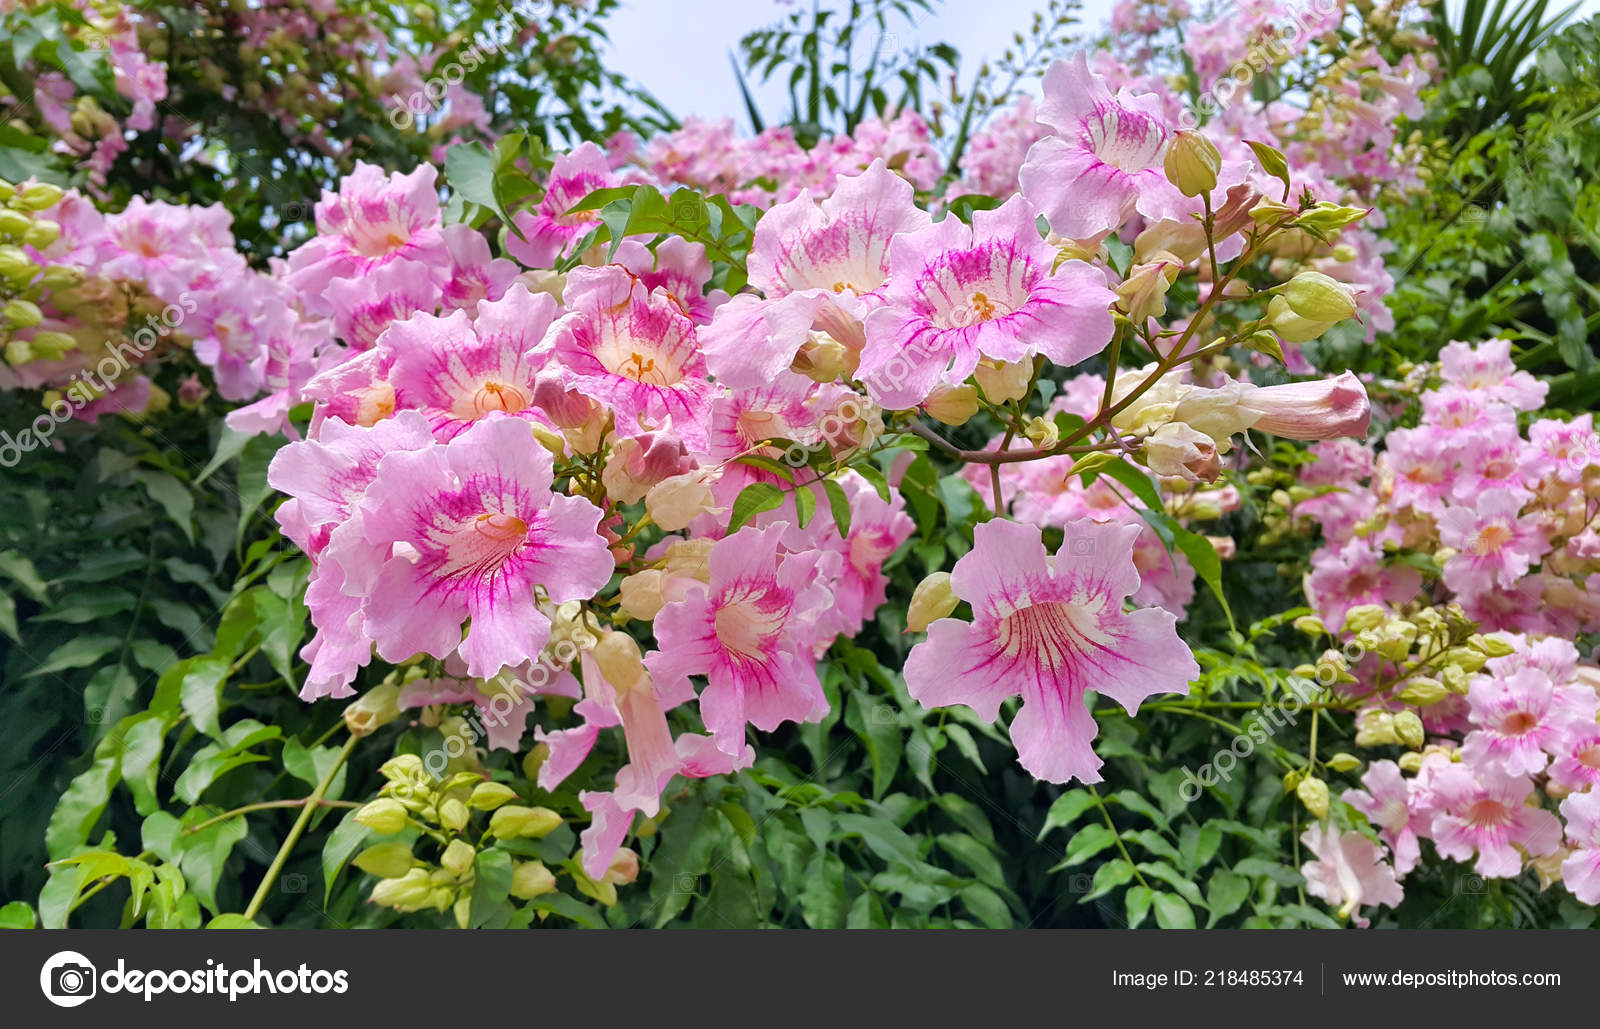 Beautiful flowers of Pink Trumpet vine or Port St John's Creeper (klimop) or Podranea ricasoliana or Campsis radicans or Trumpet creeper or Cow itch vine or ...